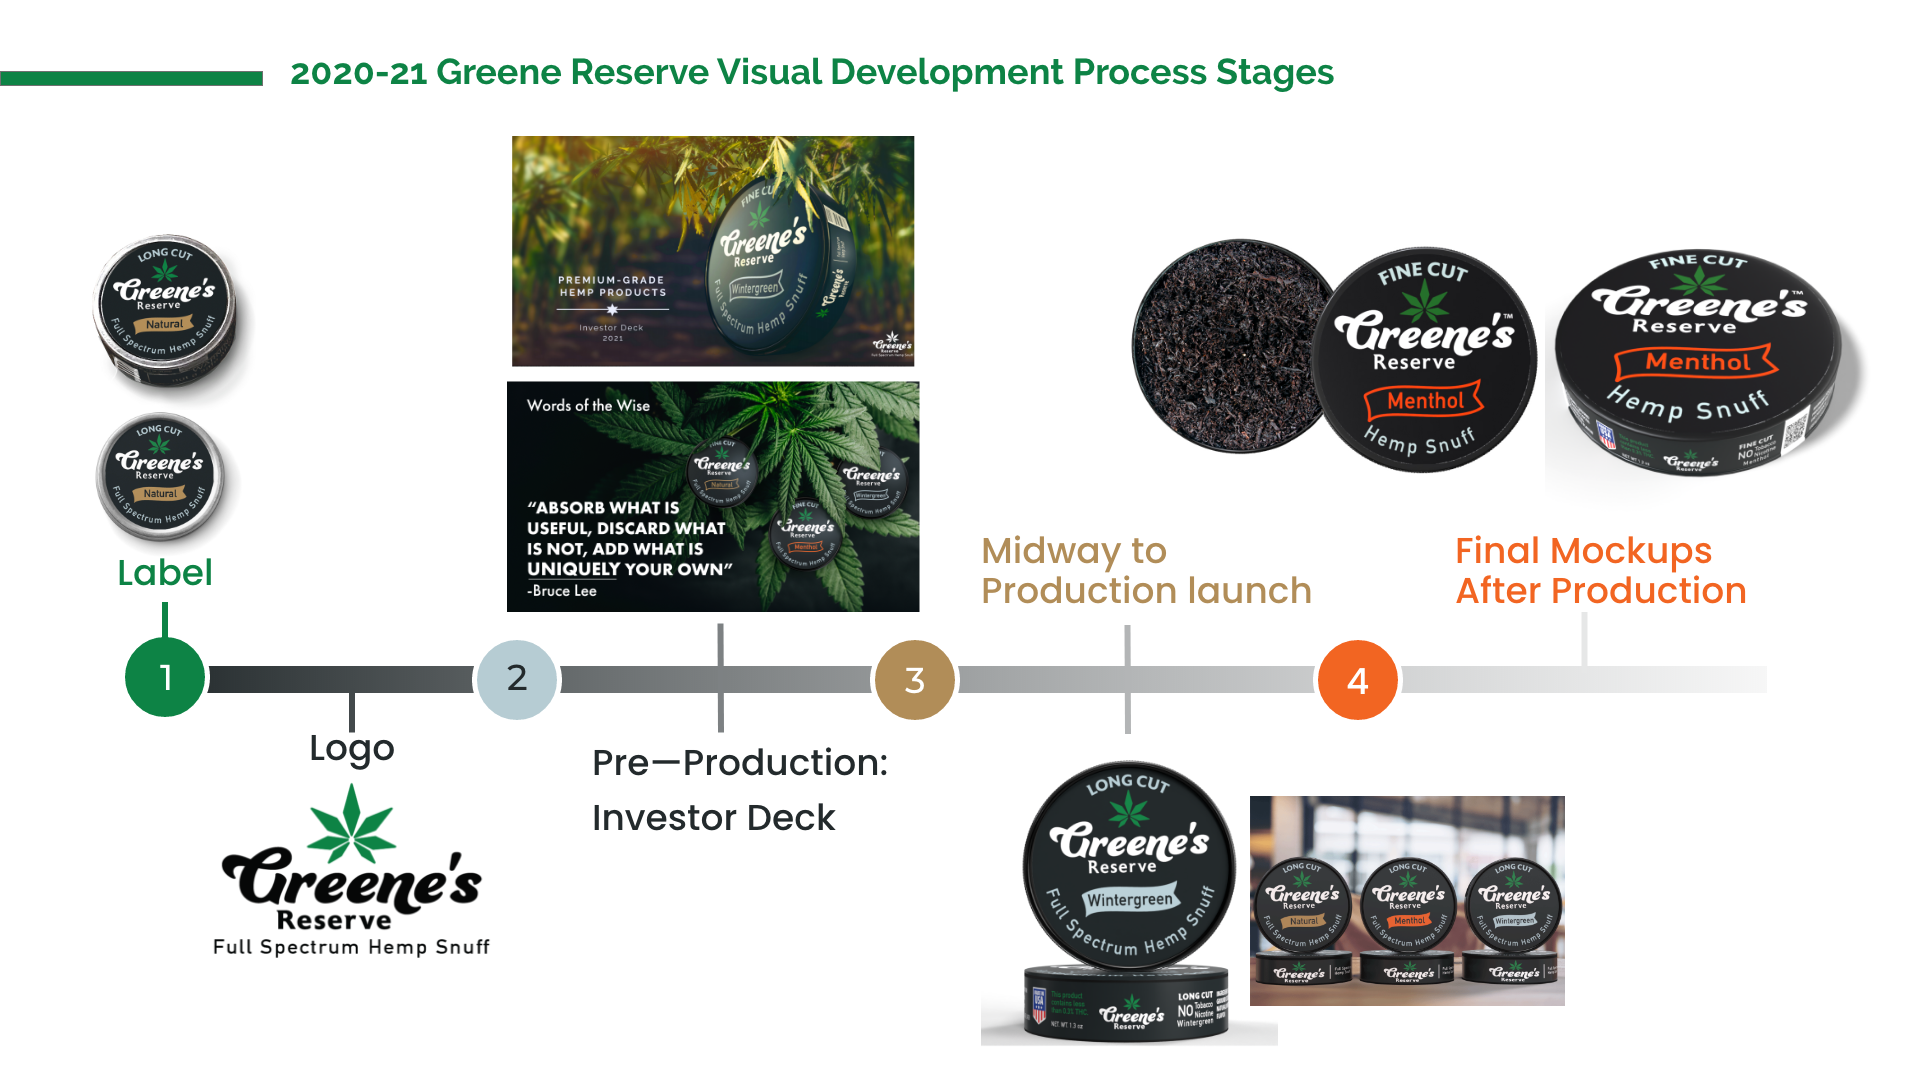 Timeline of Greene's Reserve Visual Development Stages